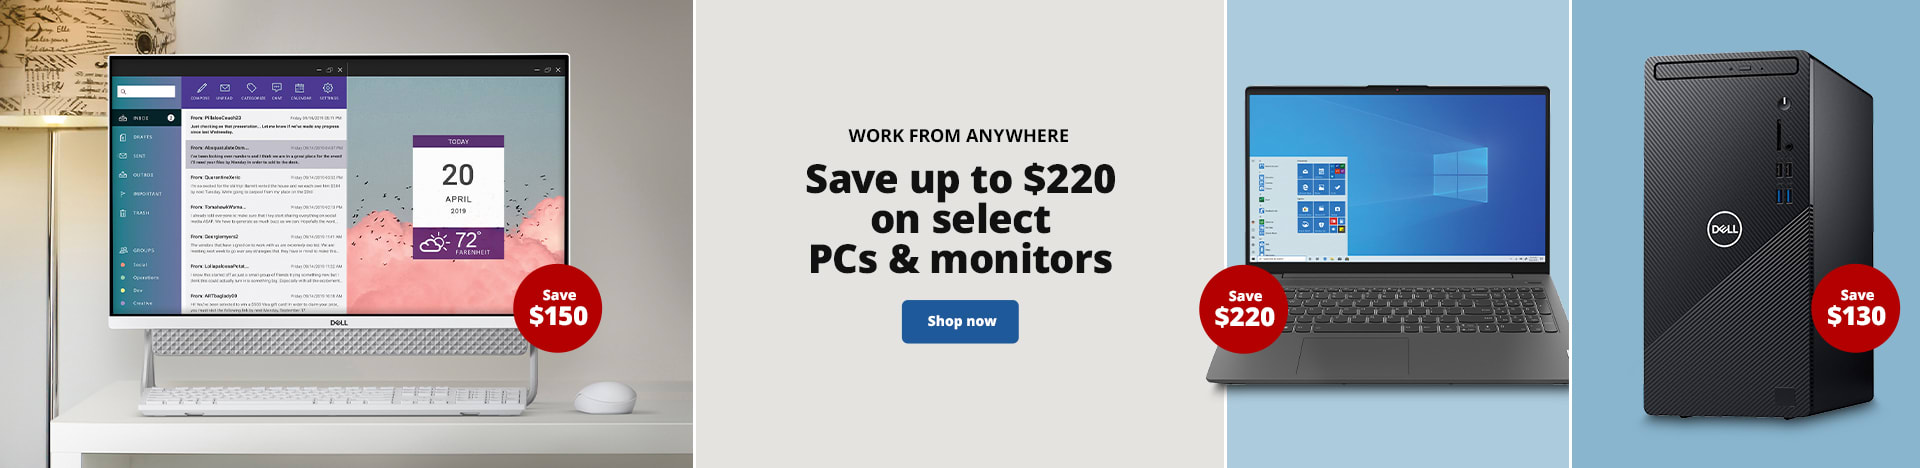 Work From Anywhere. Save up to $220 on select PCs & monitors